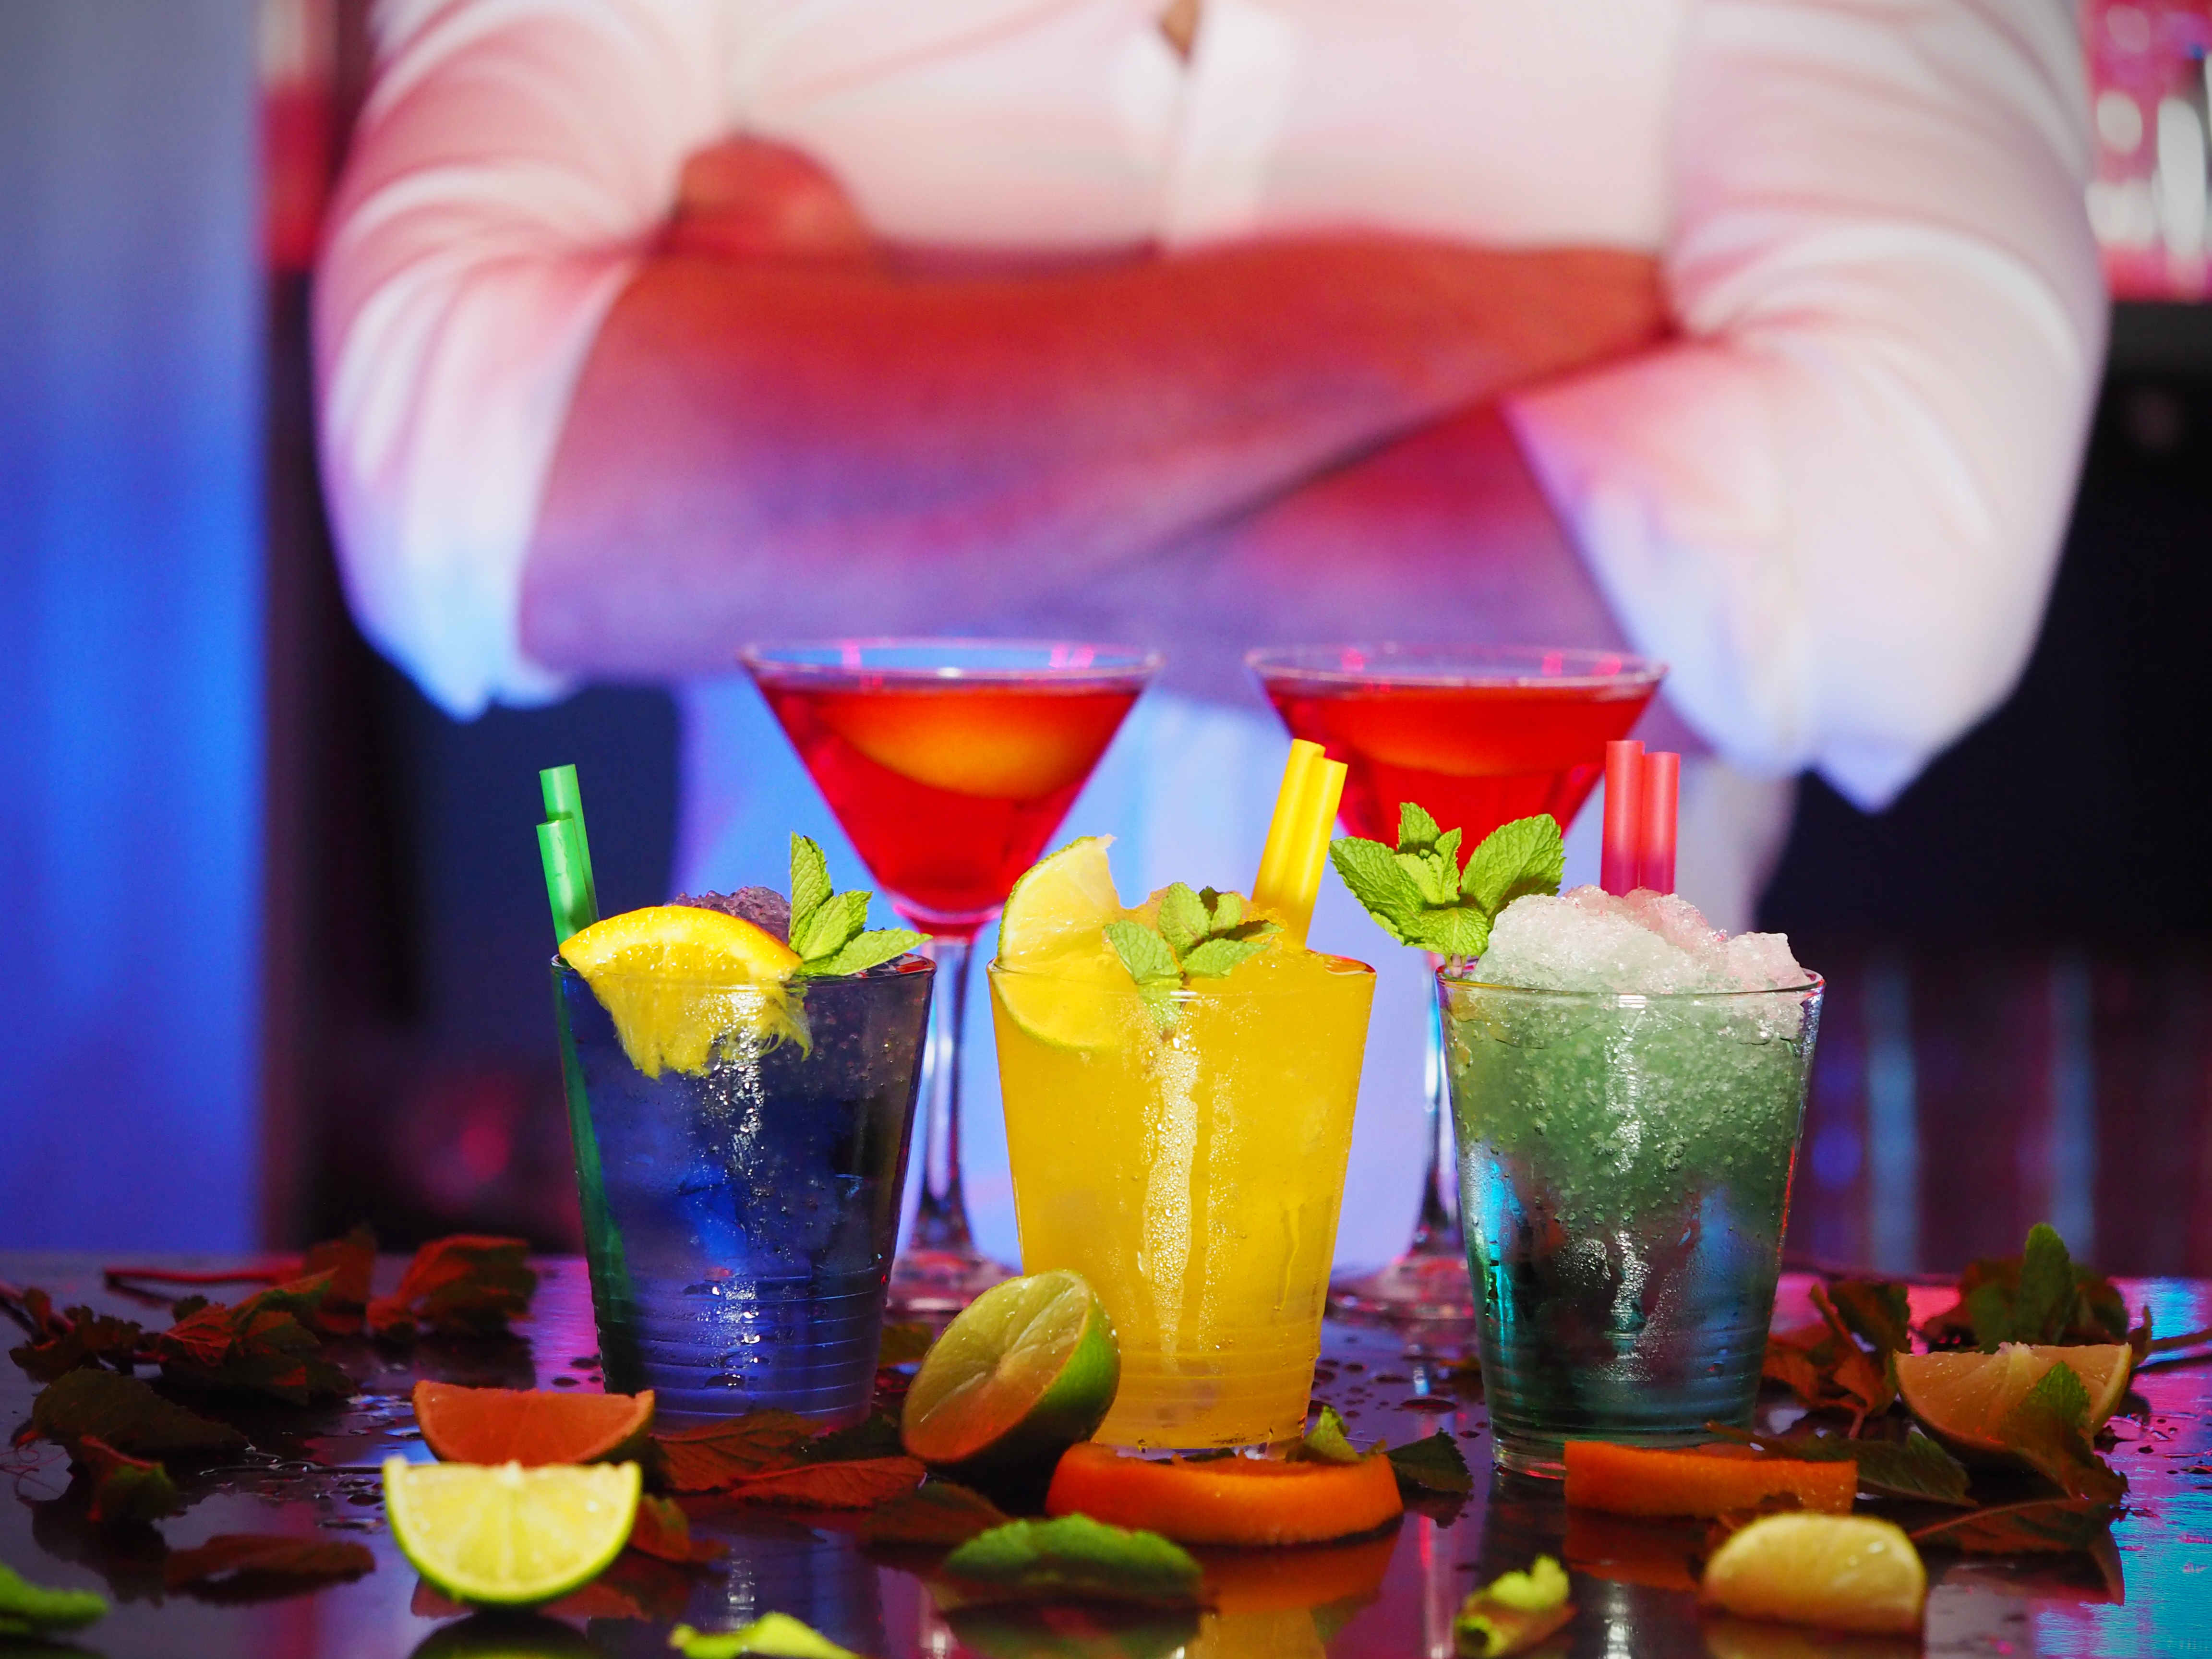 7 Things You Never Knew About Alcohol